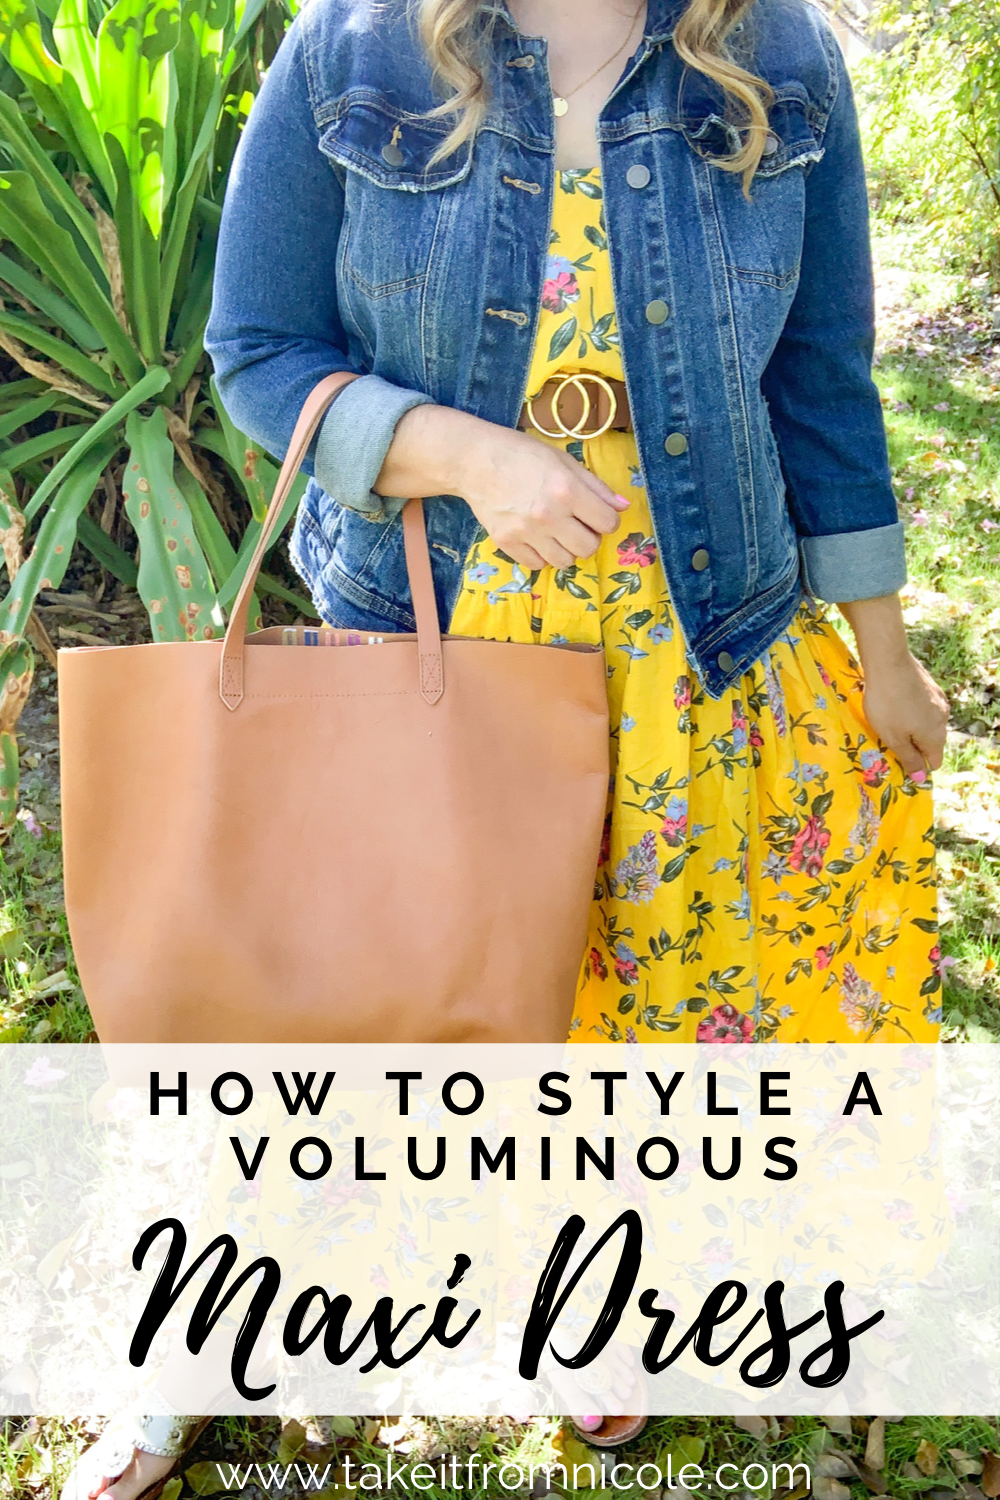 How to style and accessorize a high volume mega maxi dress. Yellow floral maxi dress, Madewell tote bag, Amazon Fashion, Jack Rogers Sandals, denim jacket.